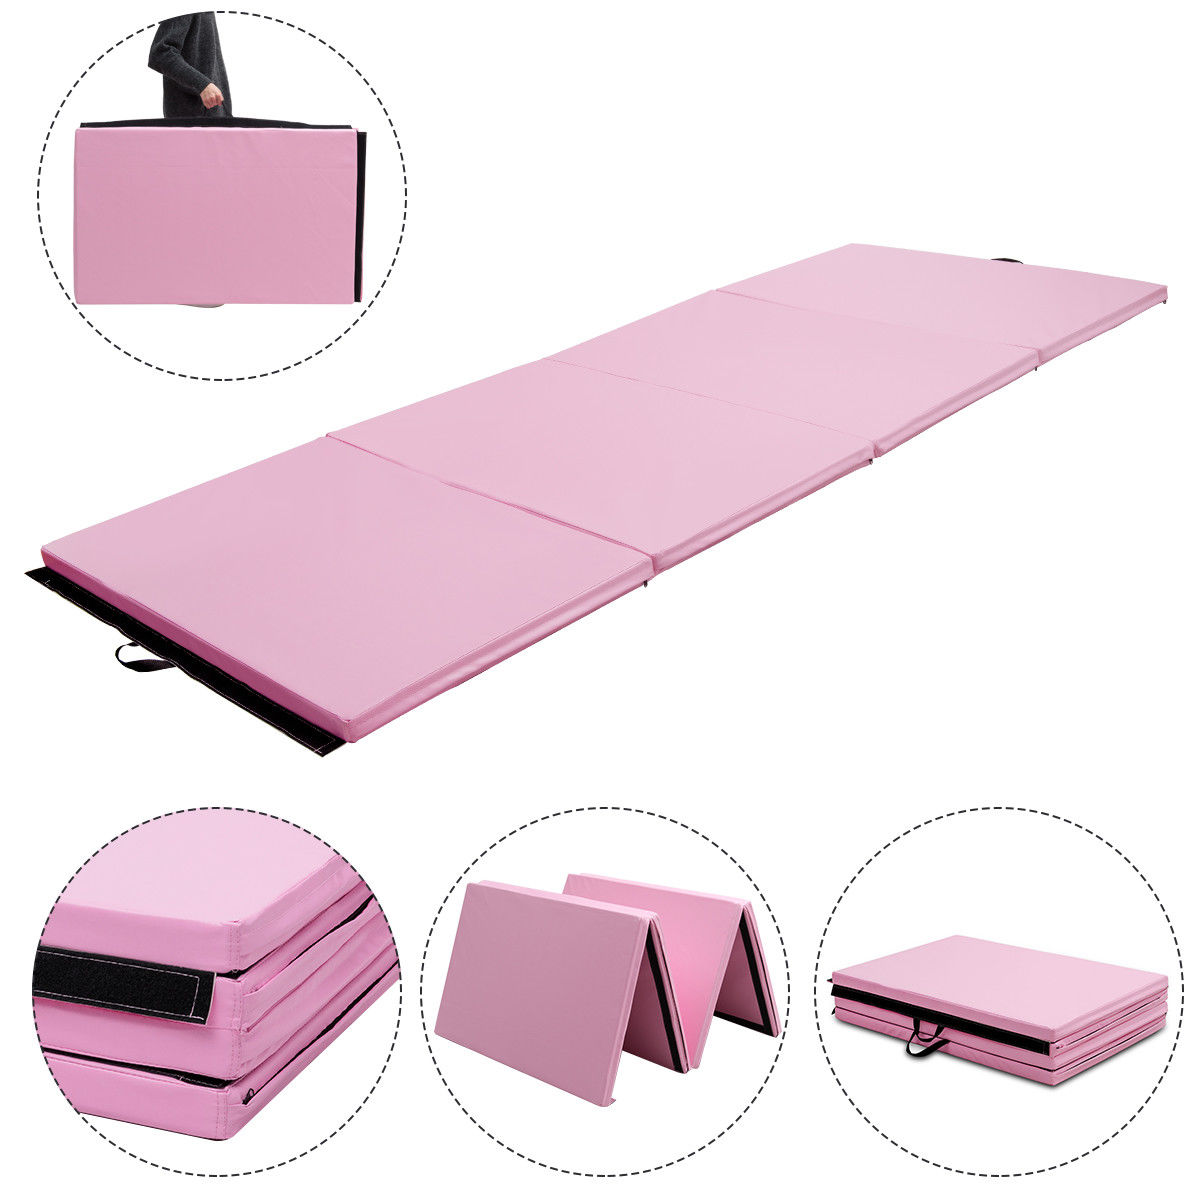 4'x10'x2'' Gymnastics Mat Thick Folding Panel Aerobics Exercise Gym Fitness Pink